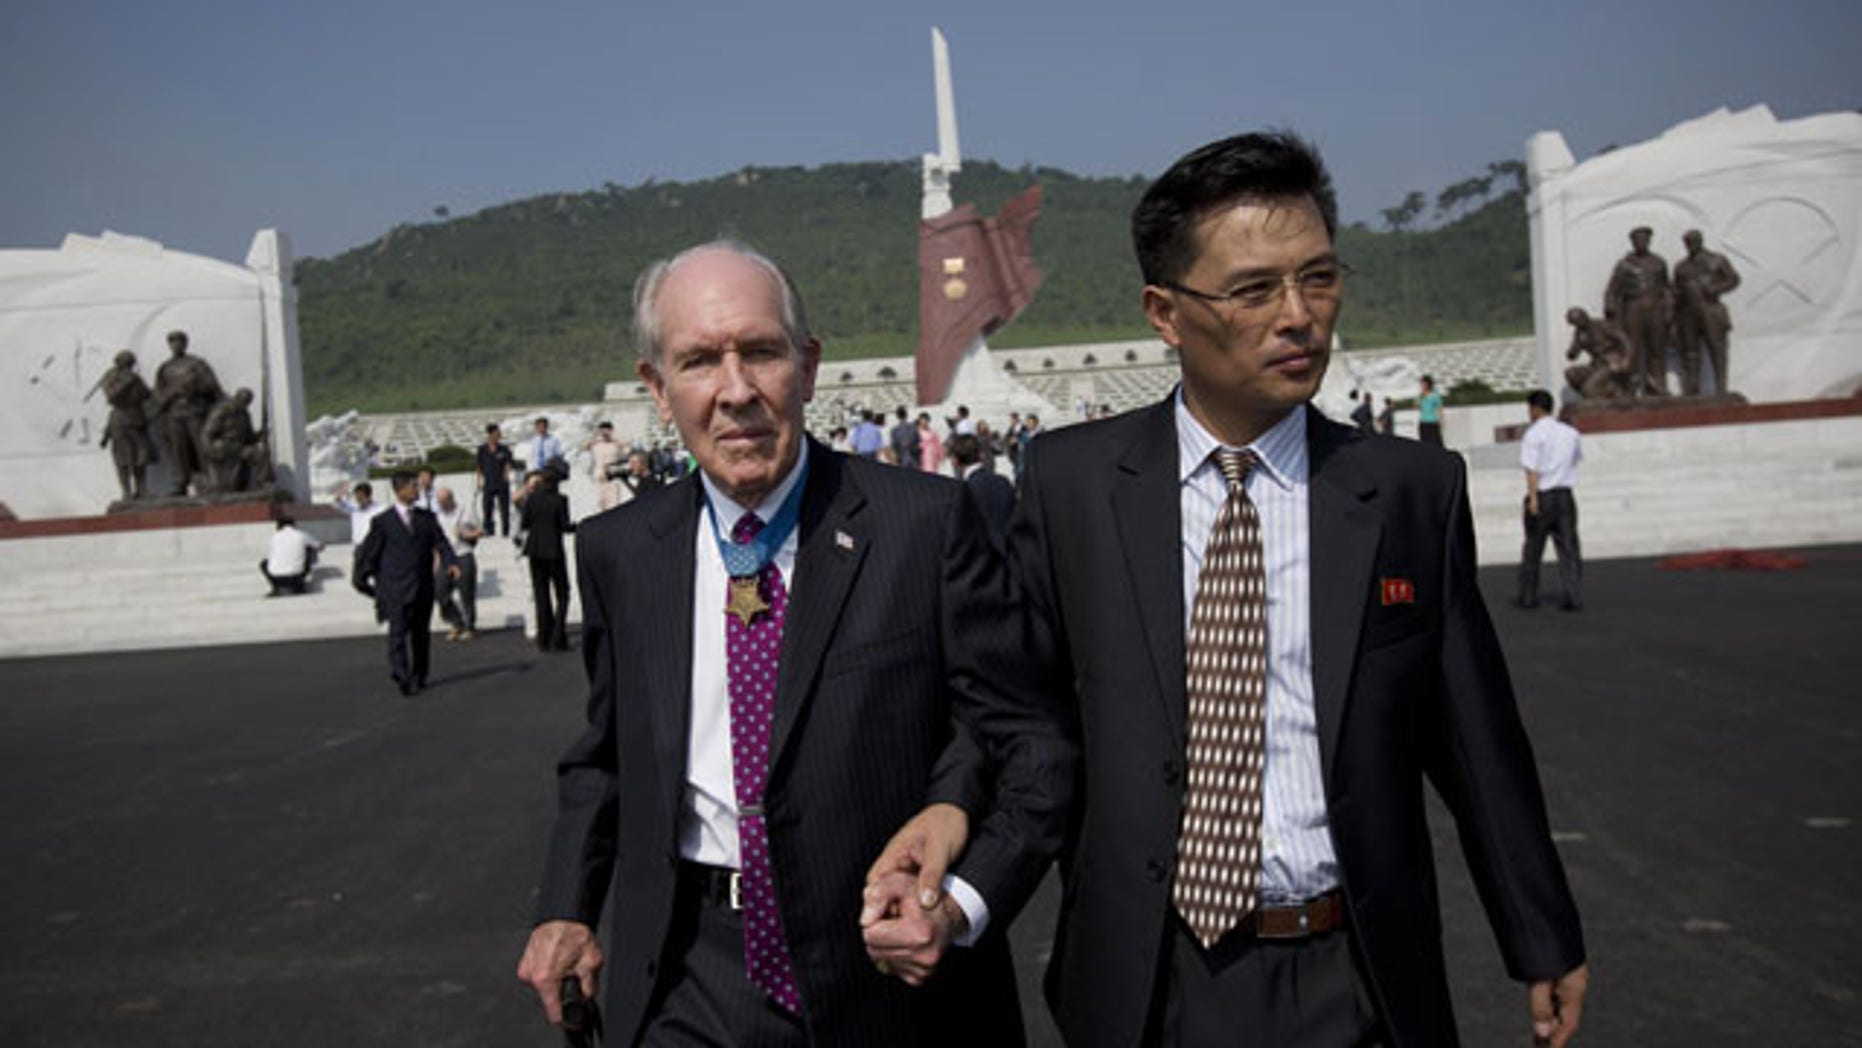 July 25, 2013: Retired U.S. Navy captain and Korean War veteran Thomas Hudner, left, is escorted by a North Korean official as he leaves a cemetery for Korean War veterans after a ceremony marking the 60th anniversary of the signing of the armistice that ended hostilities on the Korean peninsula. (AP PHOTO)